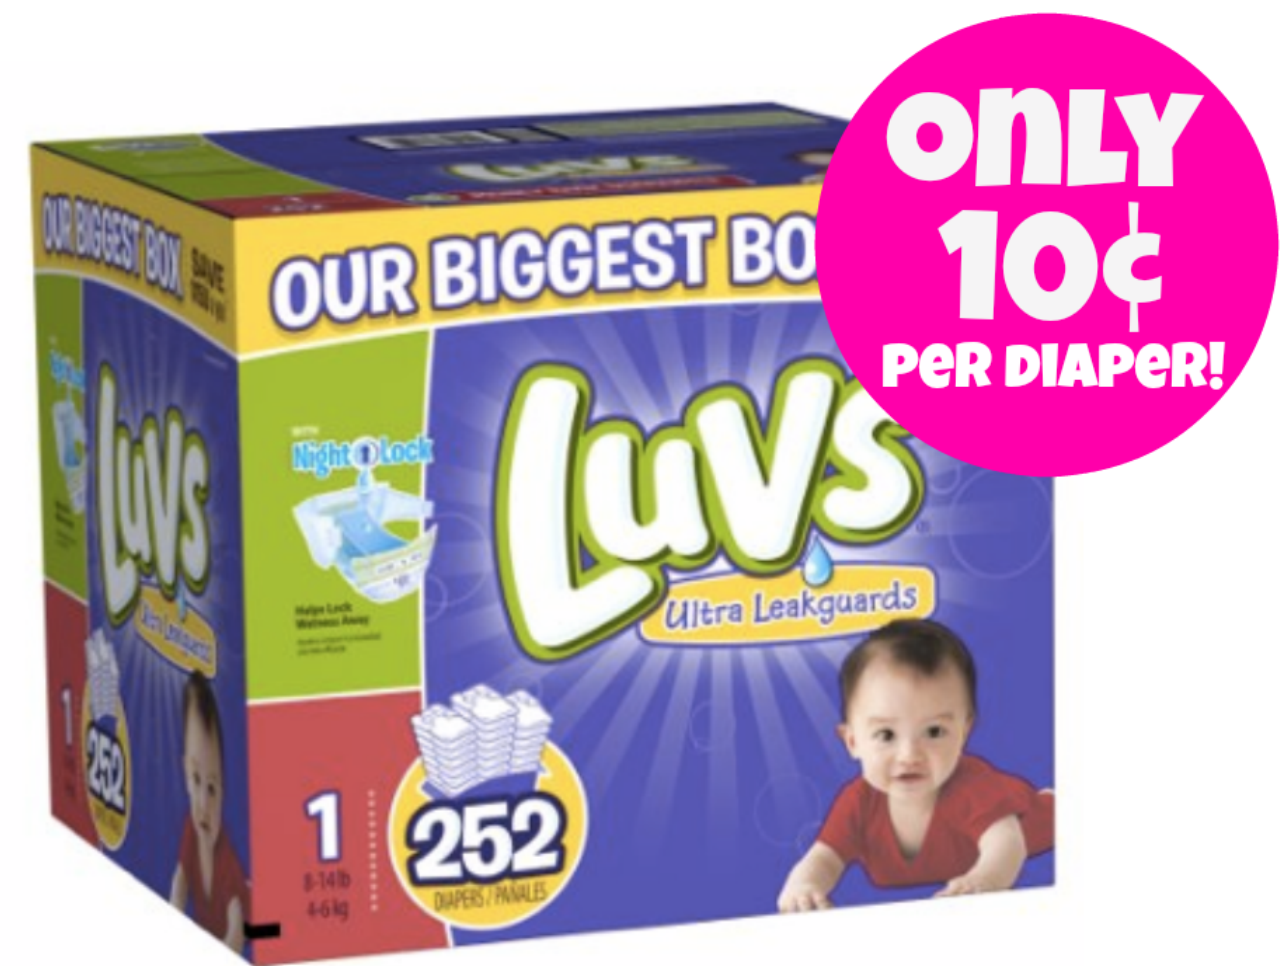 http://www.thebinderladies.com/2014/10/amazon-252-ct-box-luvs-ultra-leakguards.html